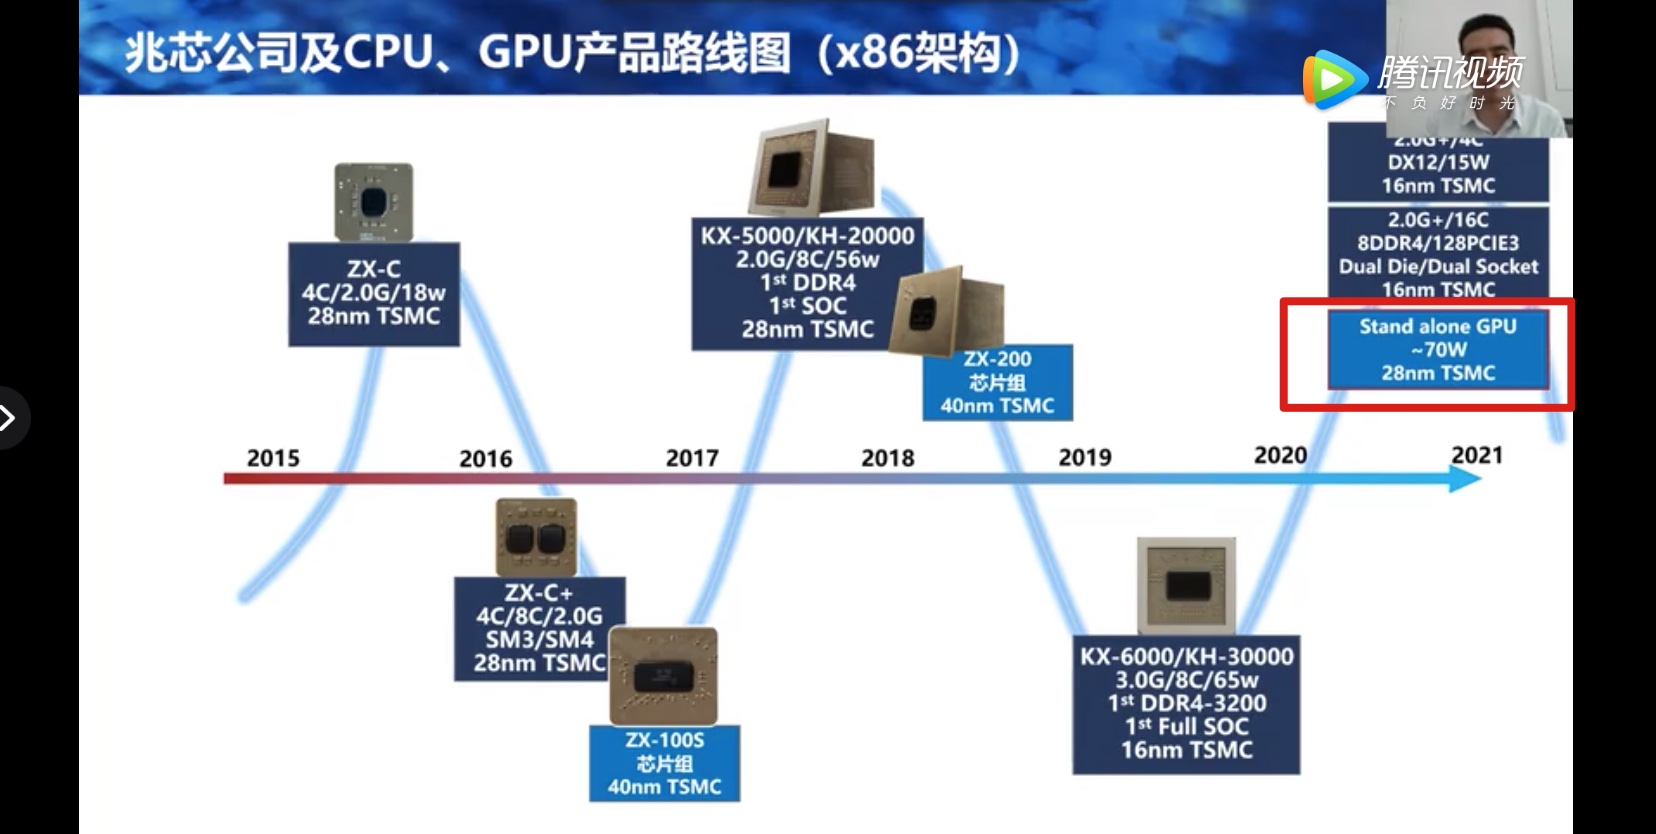 Chinese CPU maker Zhaoxin to release stand alone GPU this year-cnTechPost